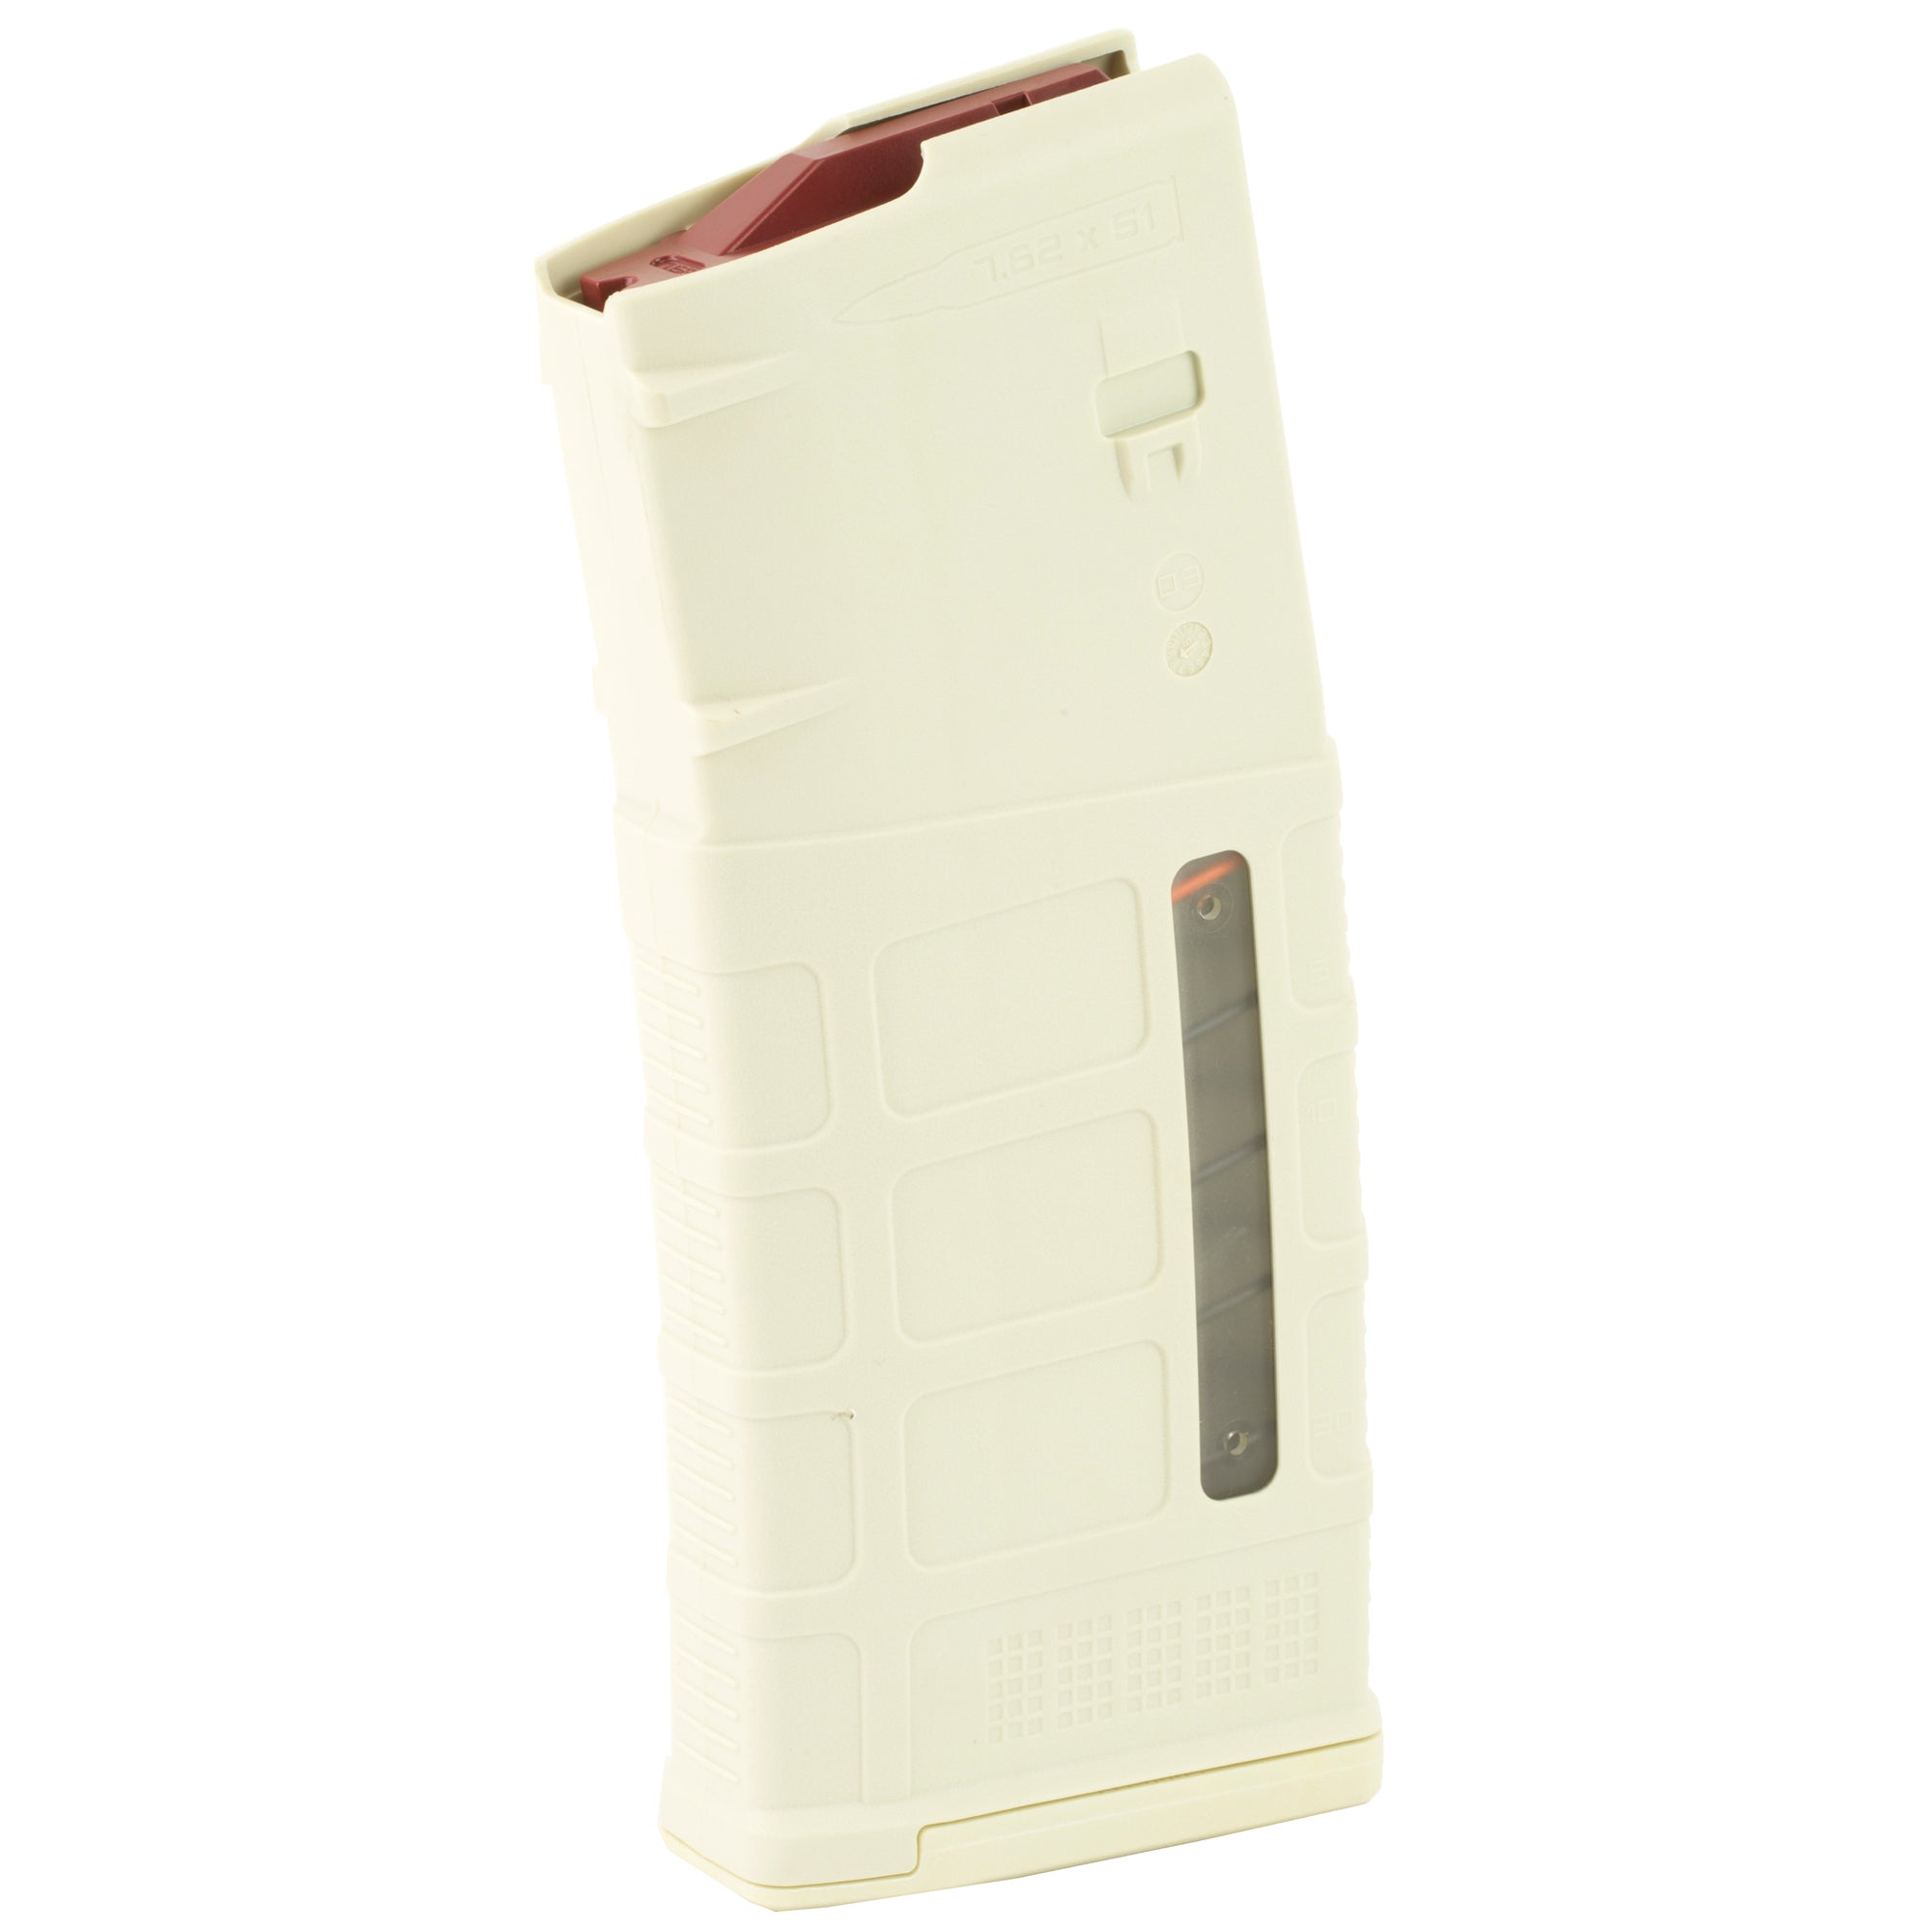 MAGPUL PMAG M3 308 Winchester/7.62 Nato 25 RD Compatible with M118 LR Ammunition